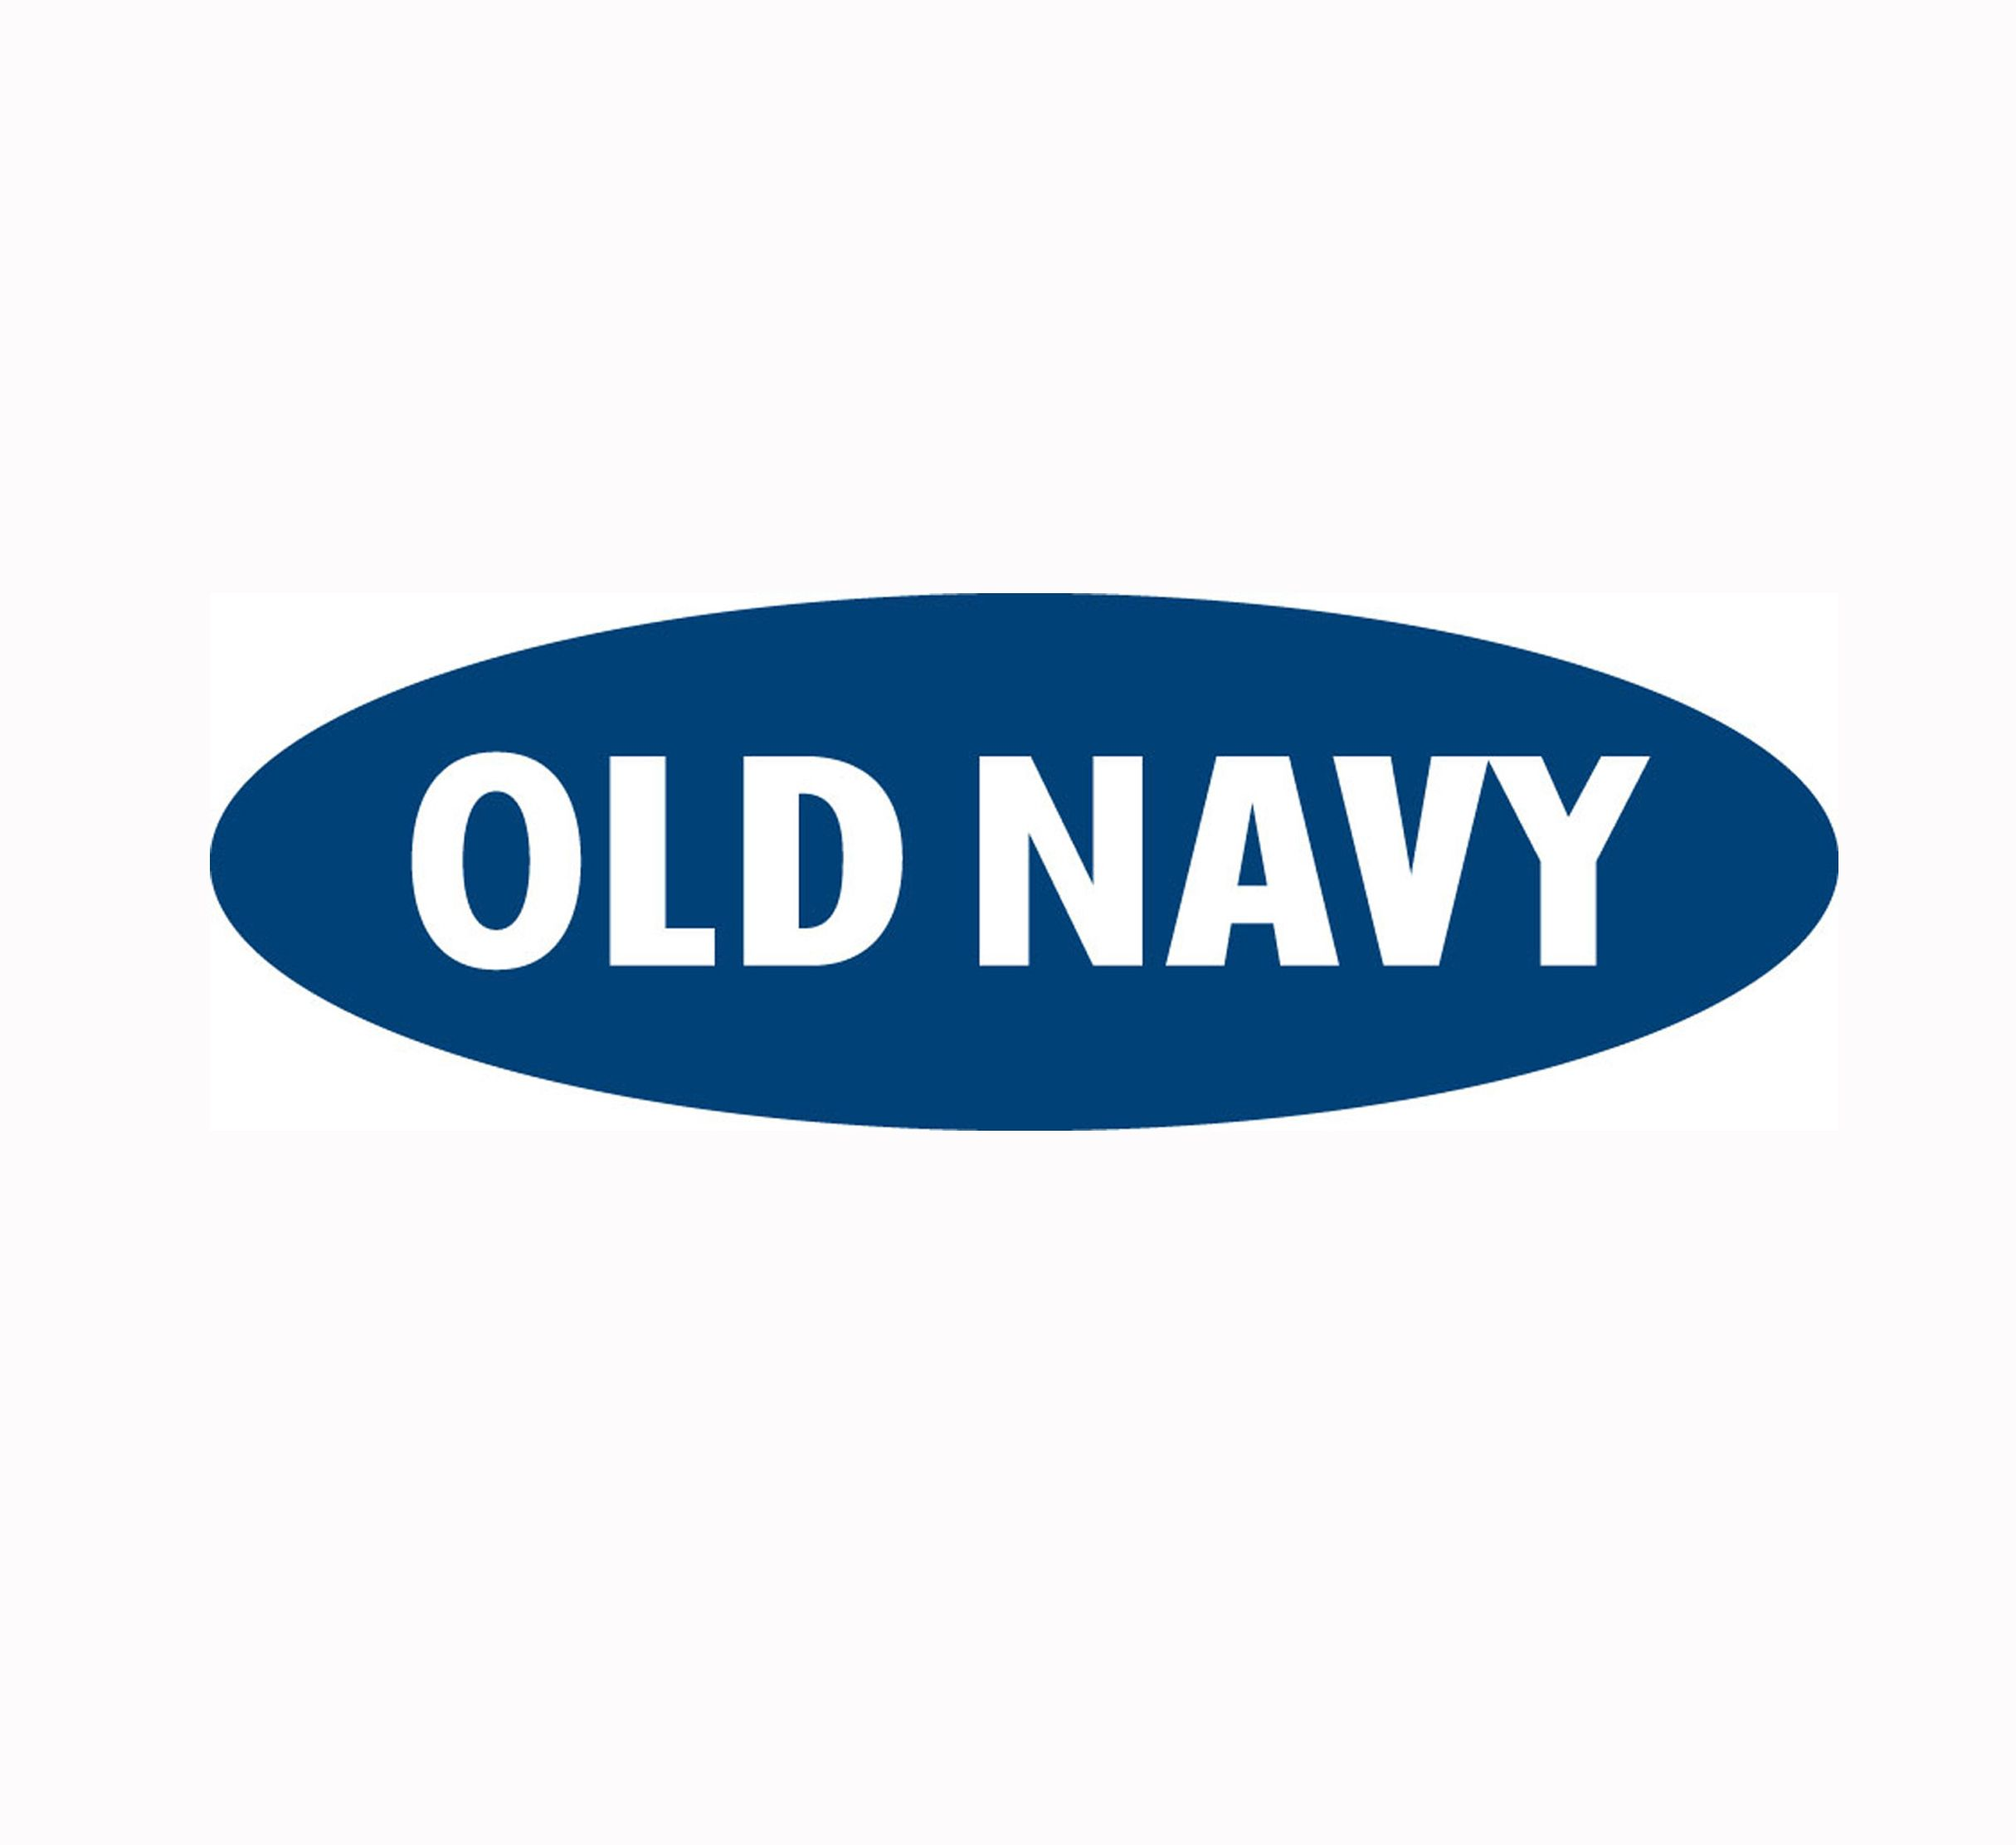 Old navy is such a great place to find nice inexpensive clothes for old navy is such a great place to find nice inexpensive clothes for the whole family fandeluxe Images